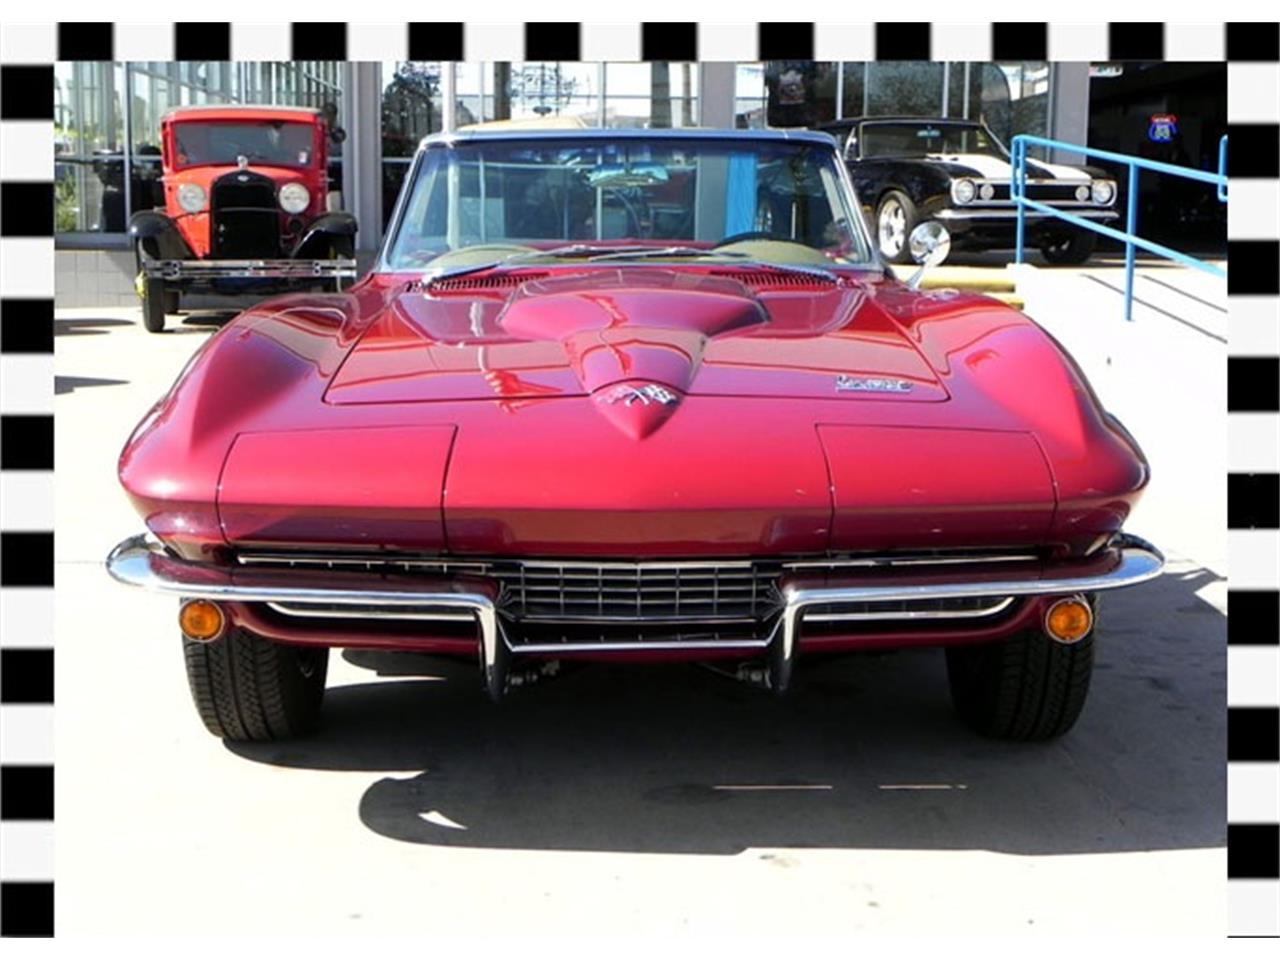 Large Picture of Classic 1966 Chevrolet Corvette located in Alberta - $99,900.00 Offered by a Private Seller - FLDD